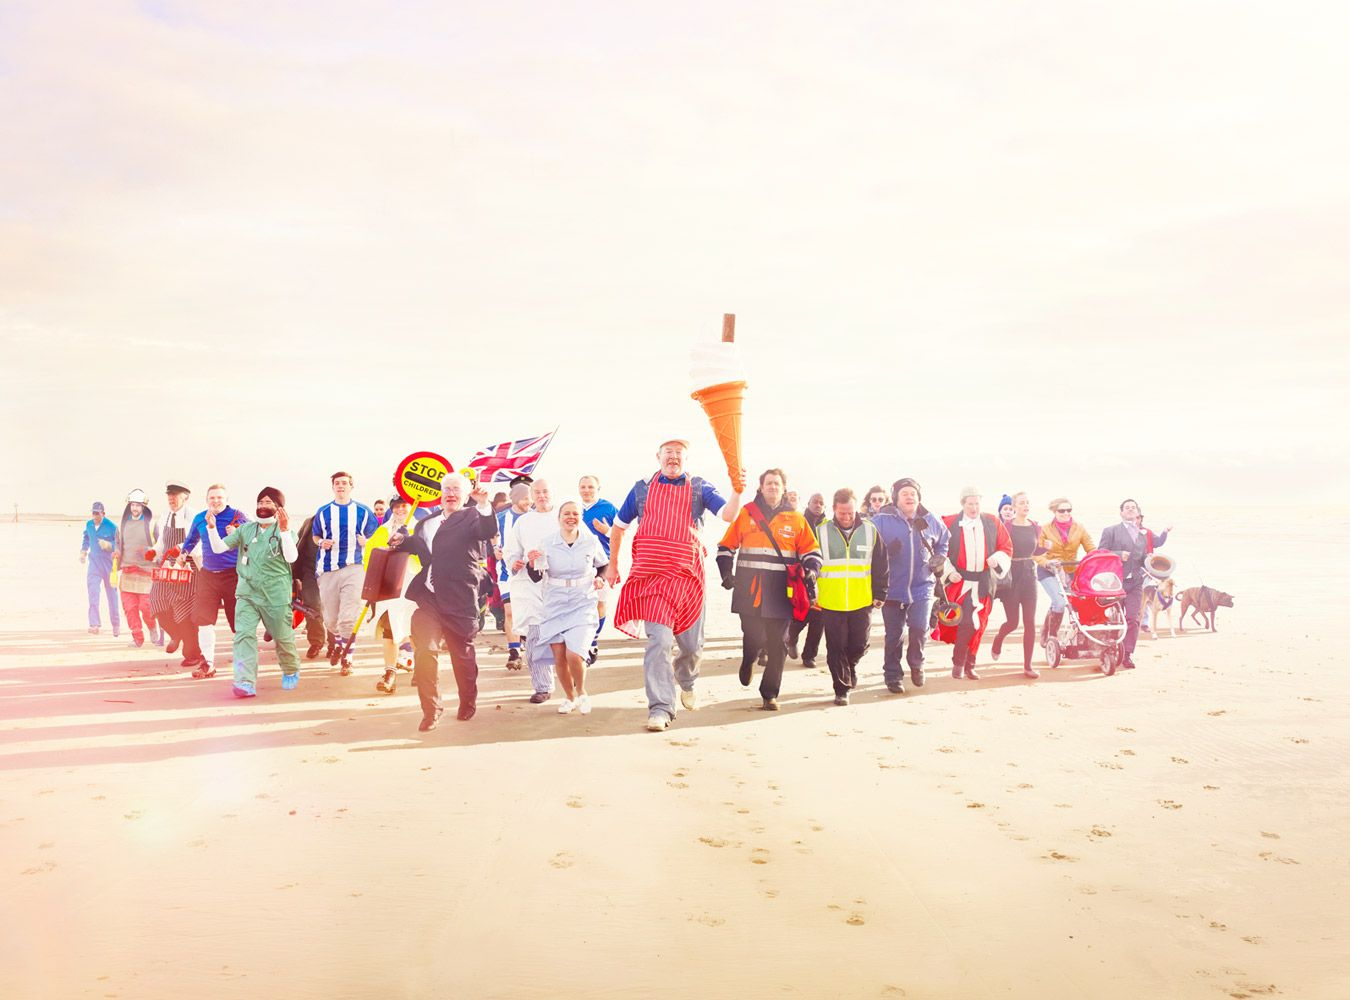 Oli Kellett Image - London Advertising Photographer - The Sun Newspaper Advertising Campaign - with people from all walks of life running together at the beach.